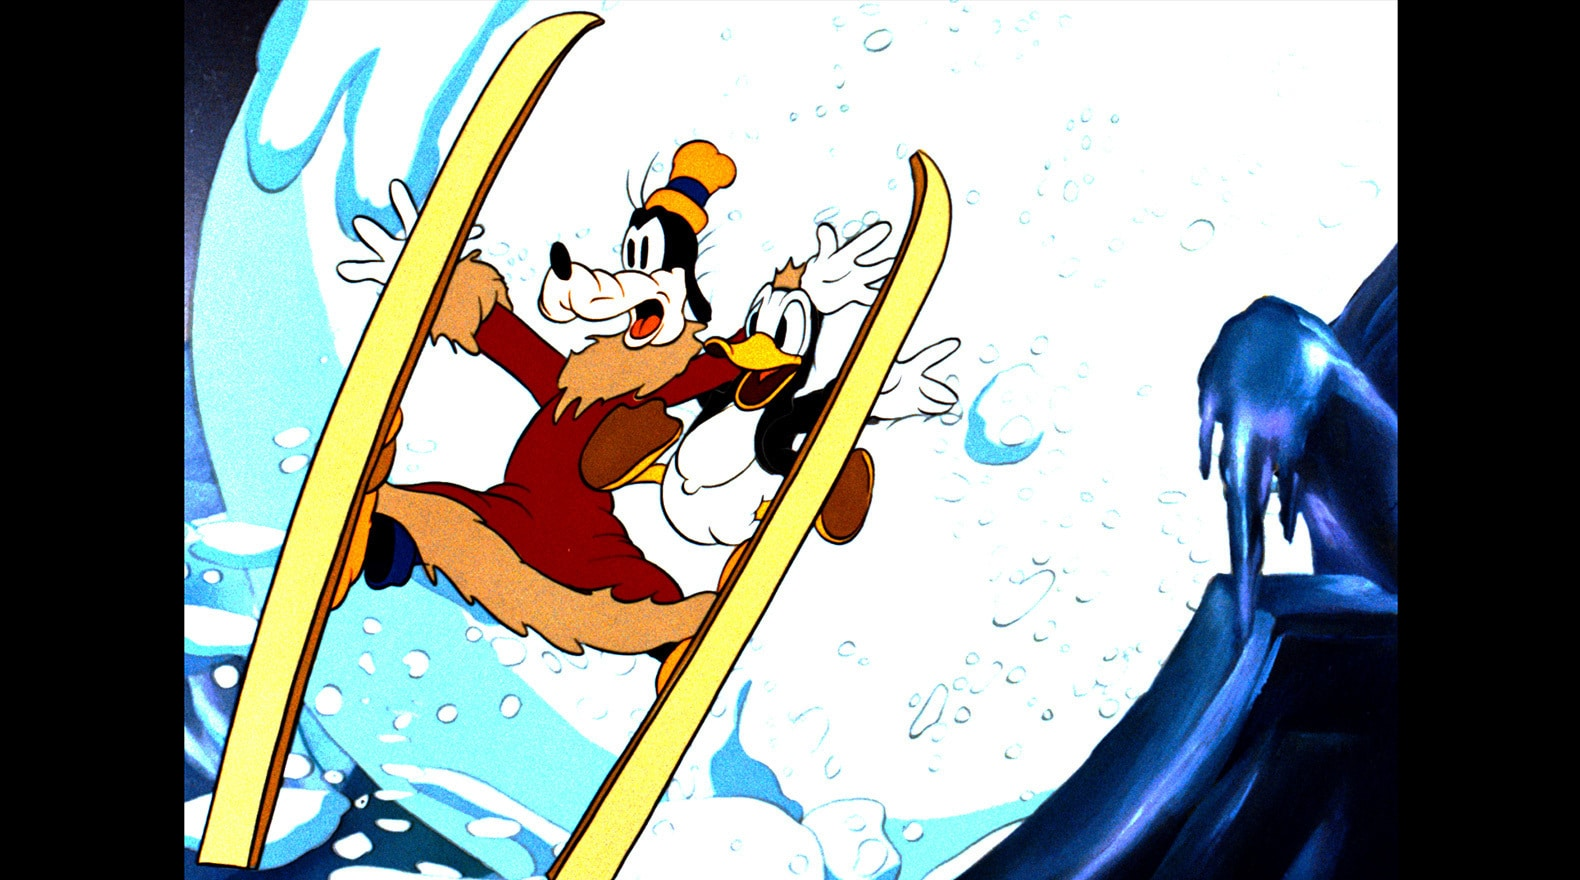 Donald and Goofy demonstrate how sometimes things snowball.